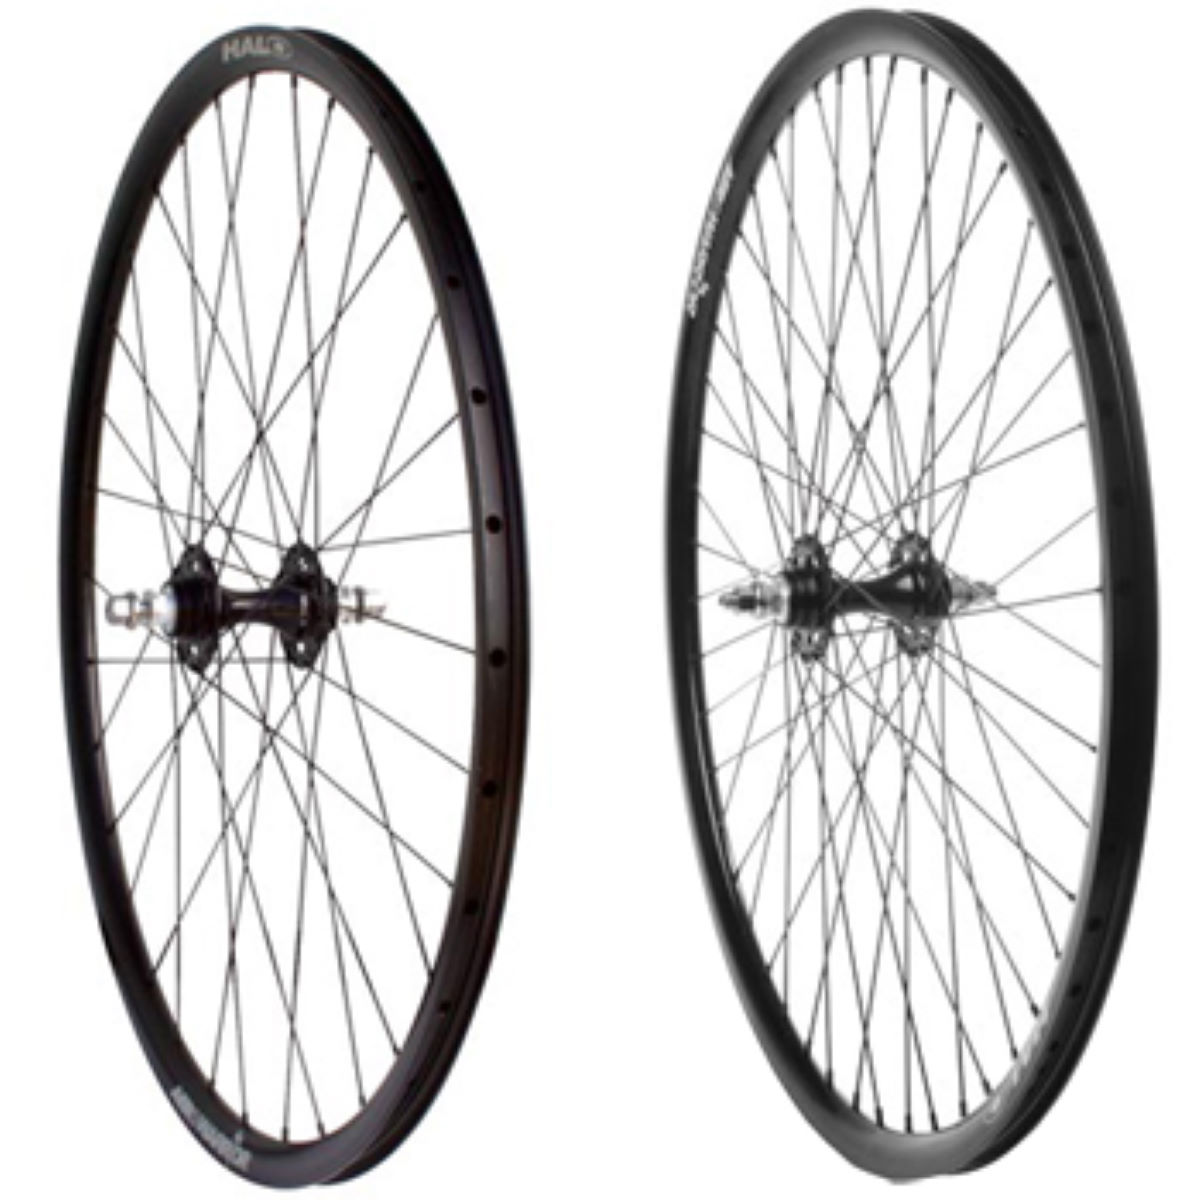 Halo Aero Warrior Rear Track Bike Wheel